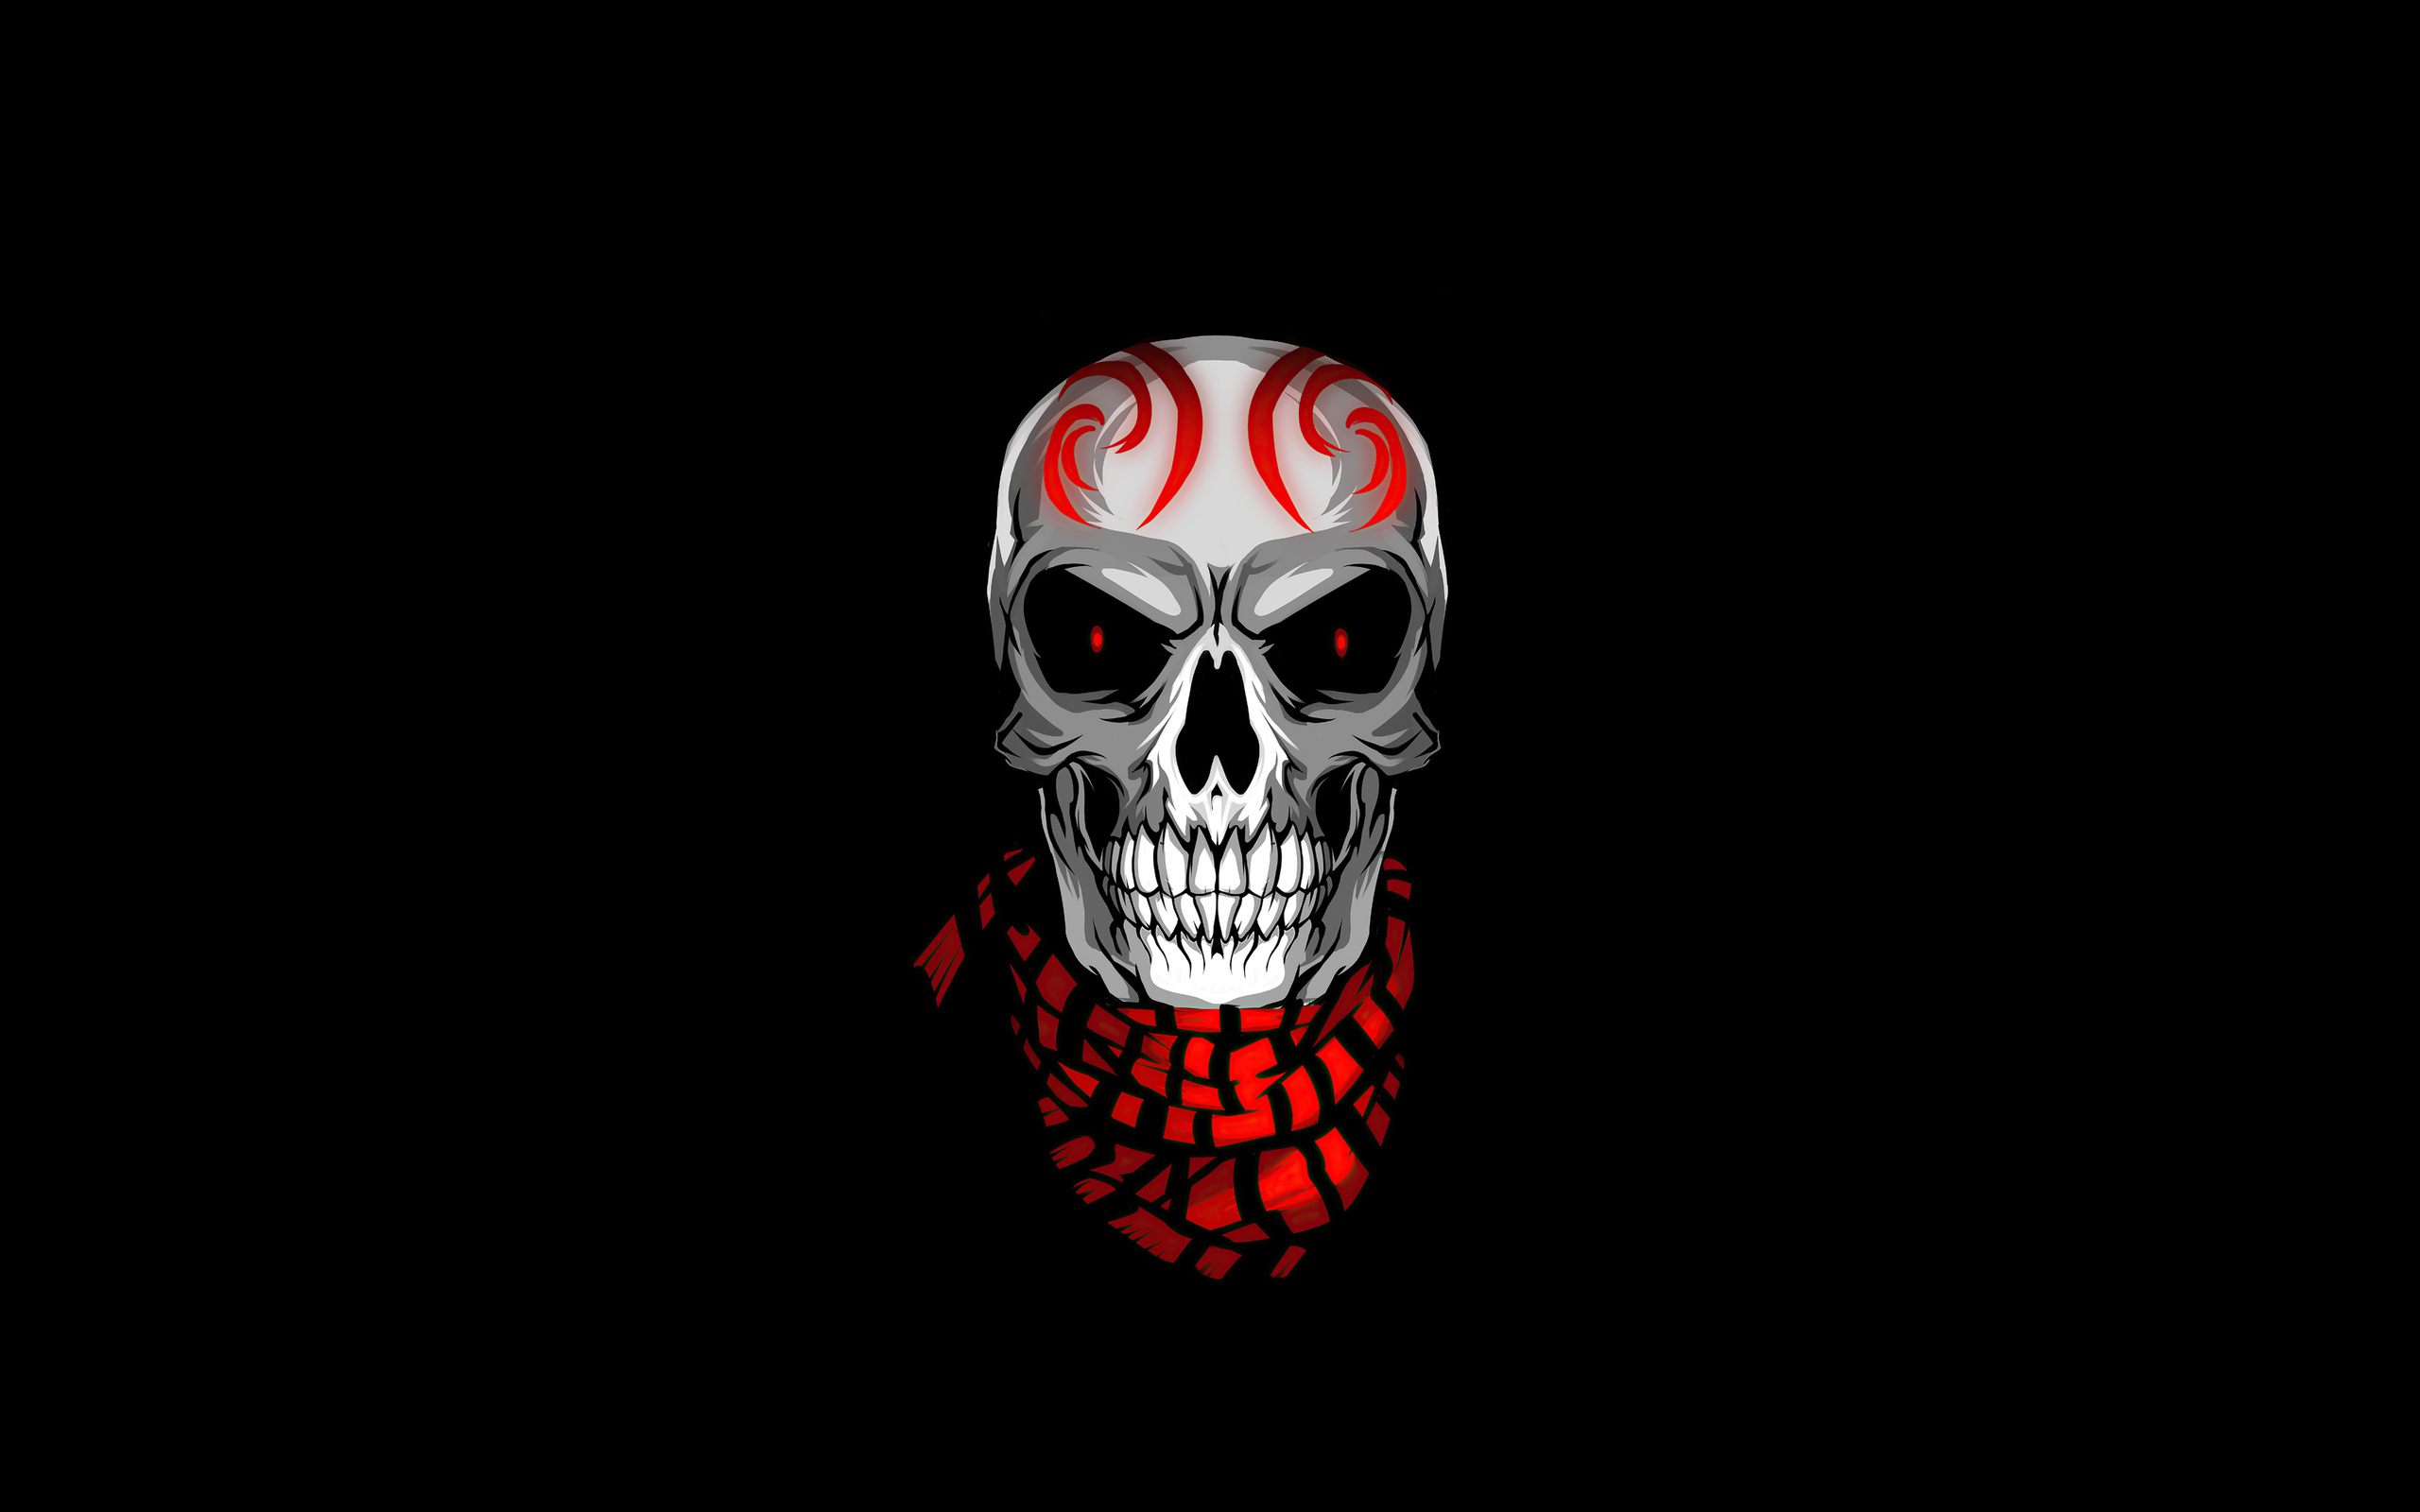 skull-with-scarves-minimal-4k-uc.jpg